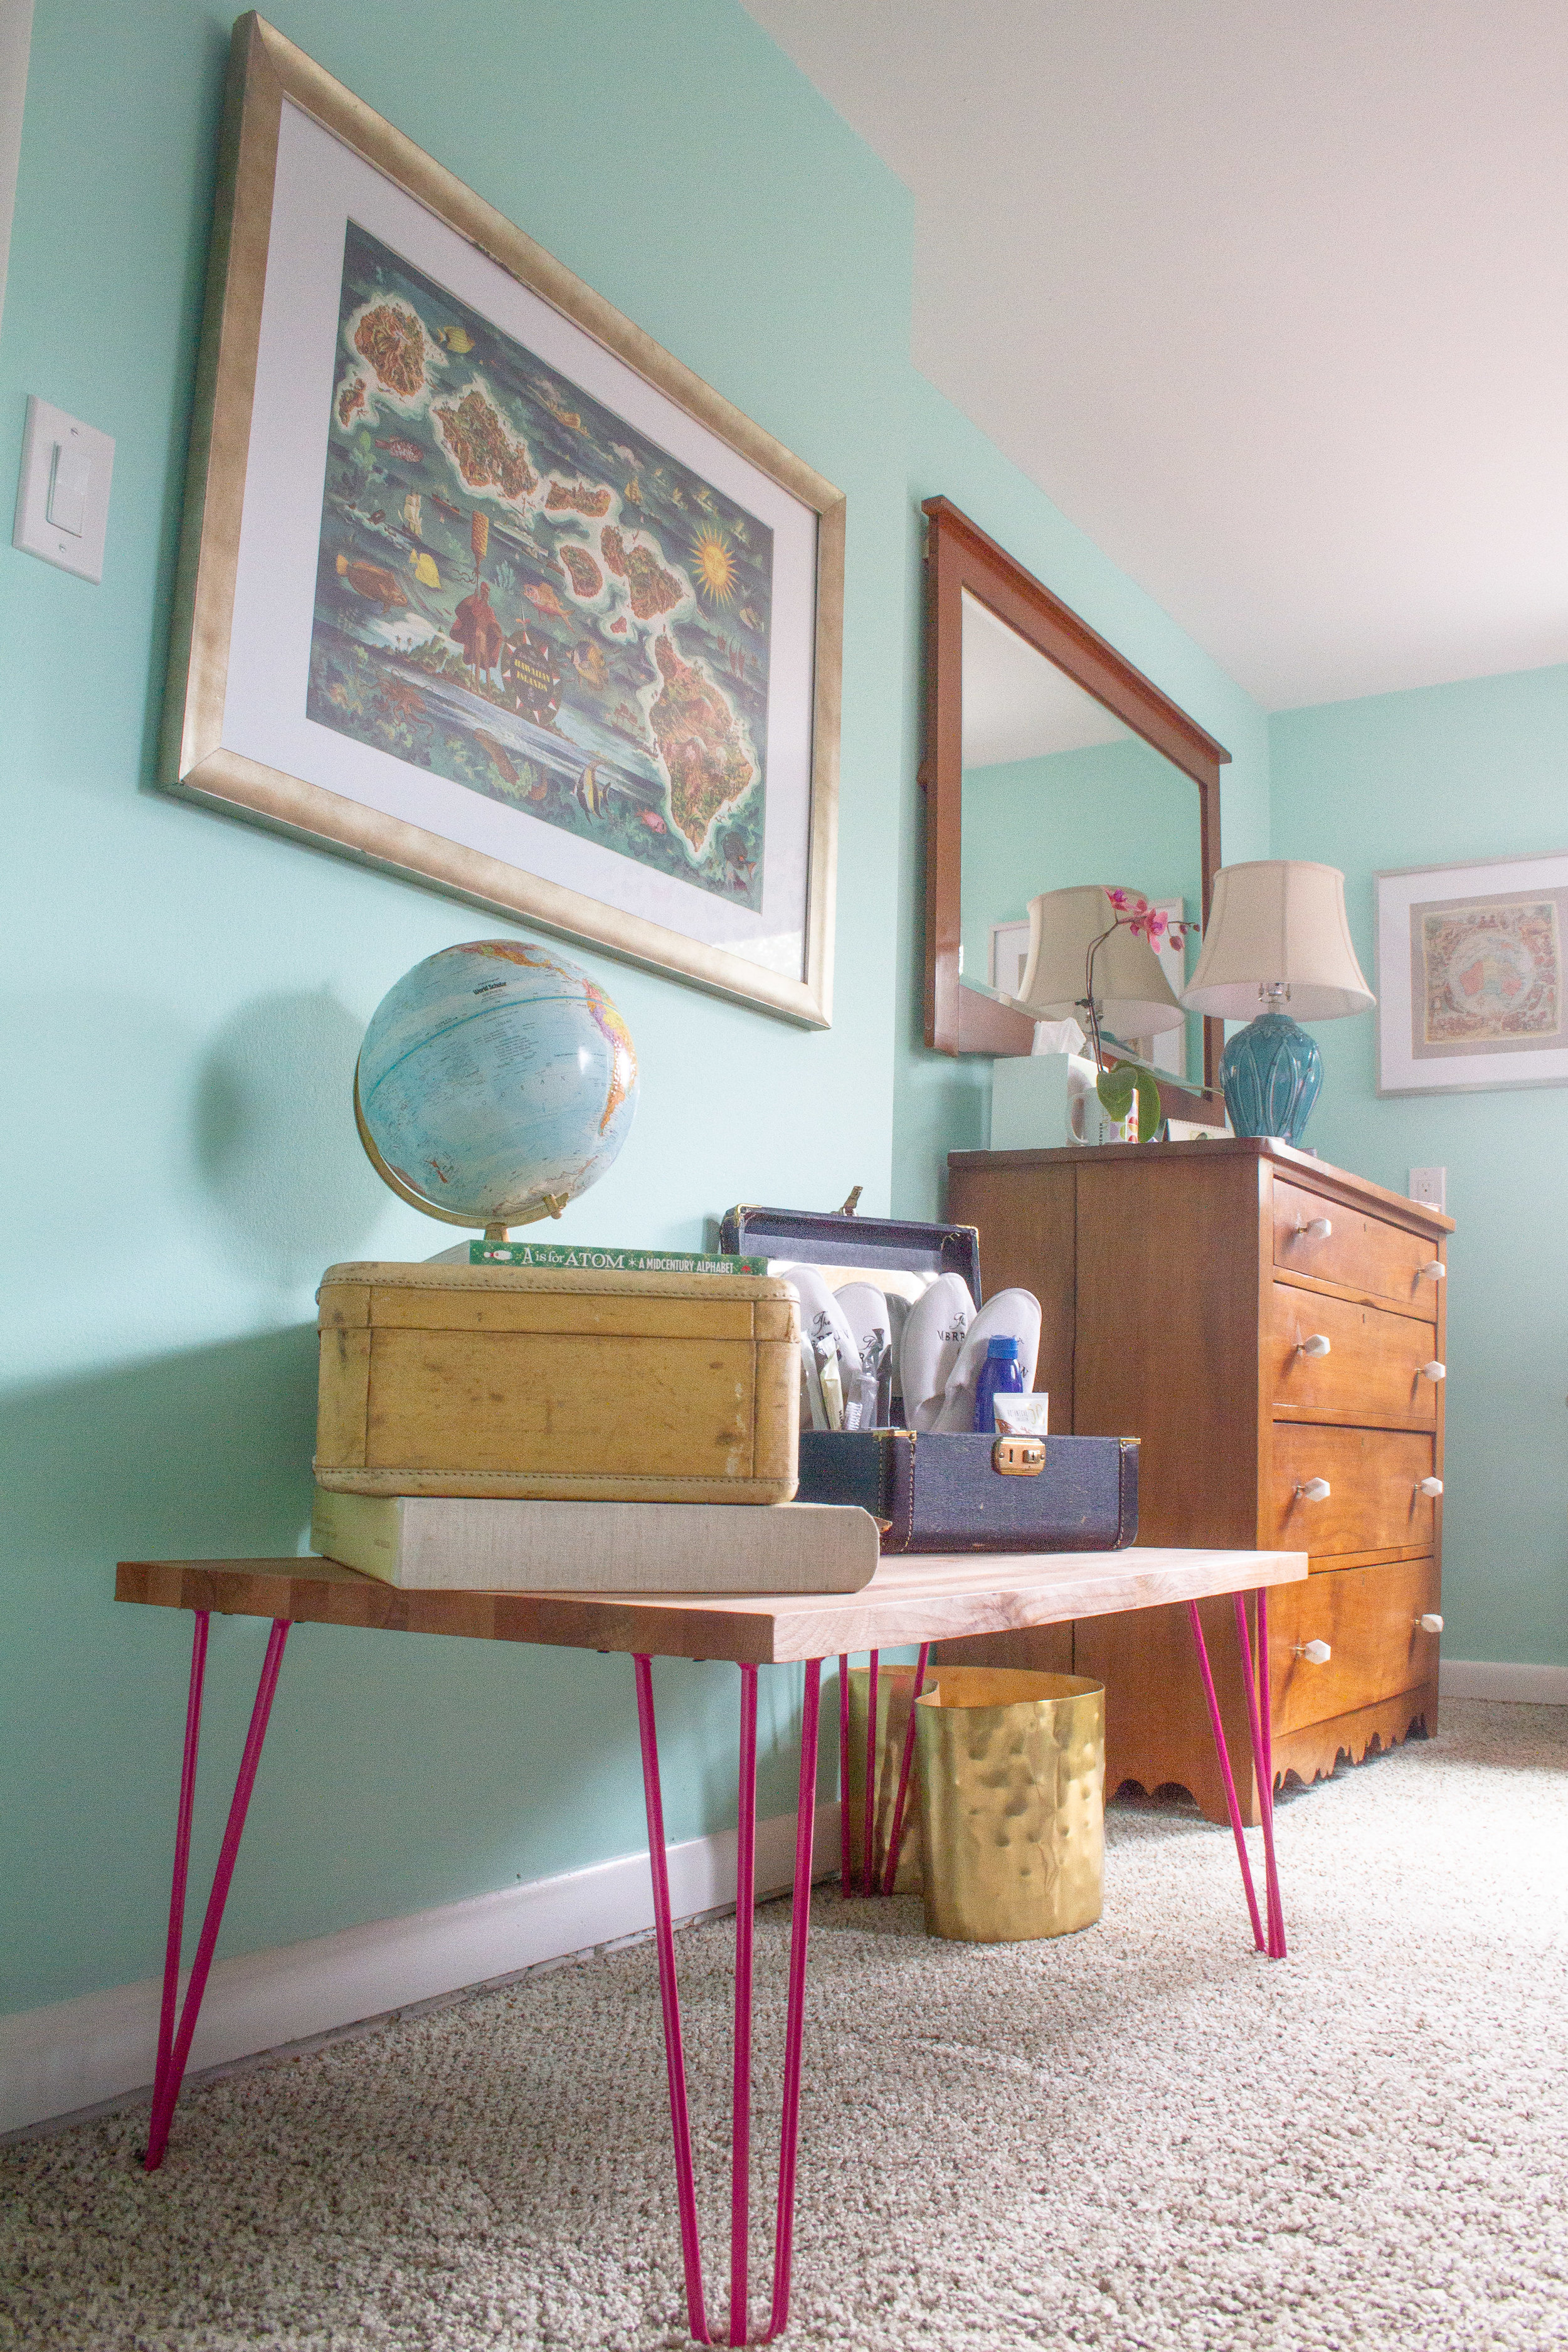 The vintage map inspiration piece hangs just inside the door over a newly-created bench, perfect for holding suitcases.